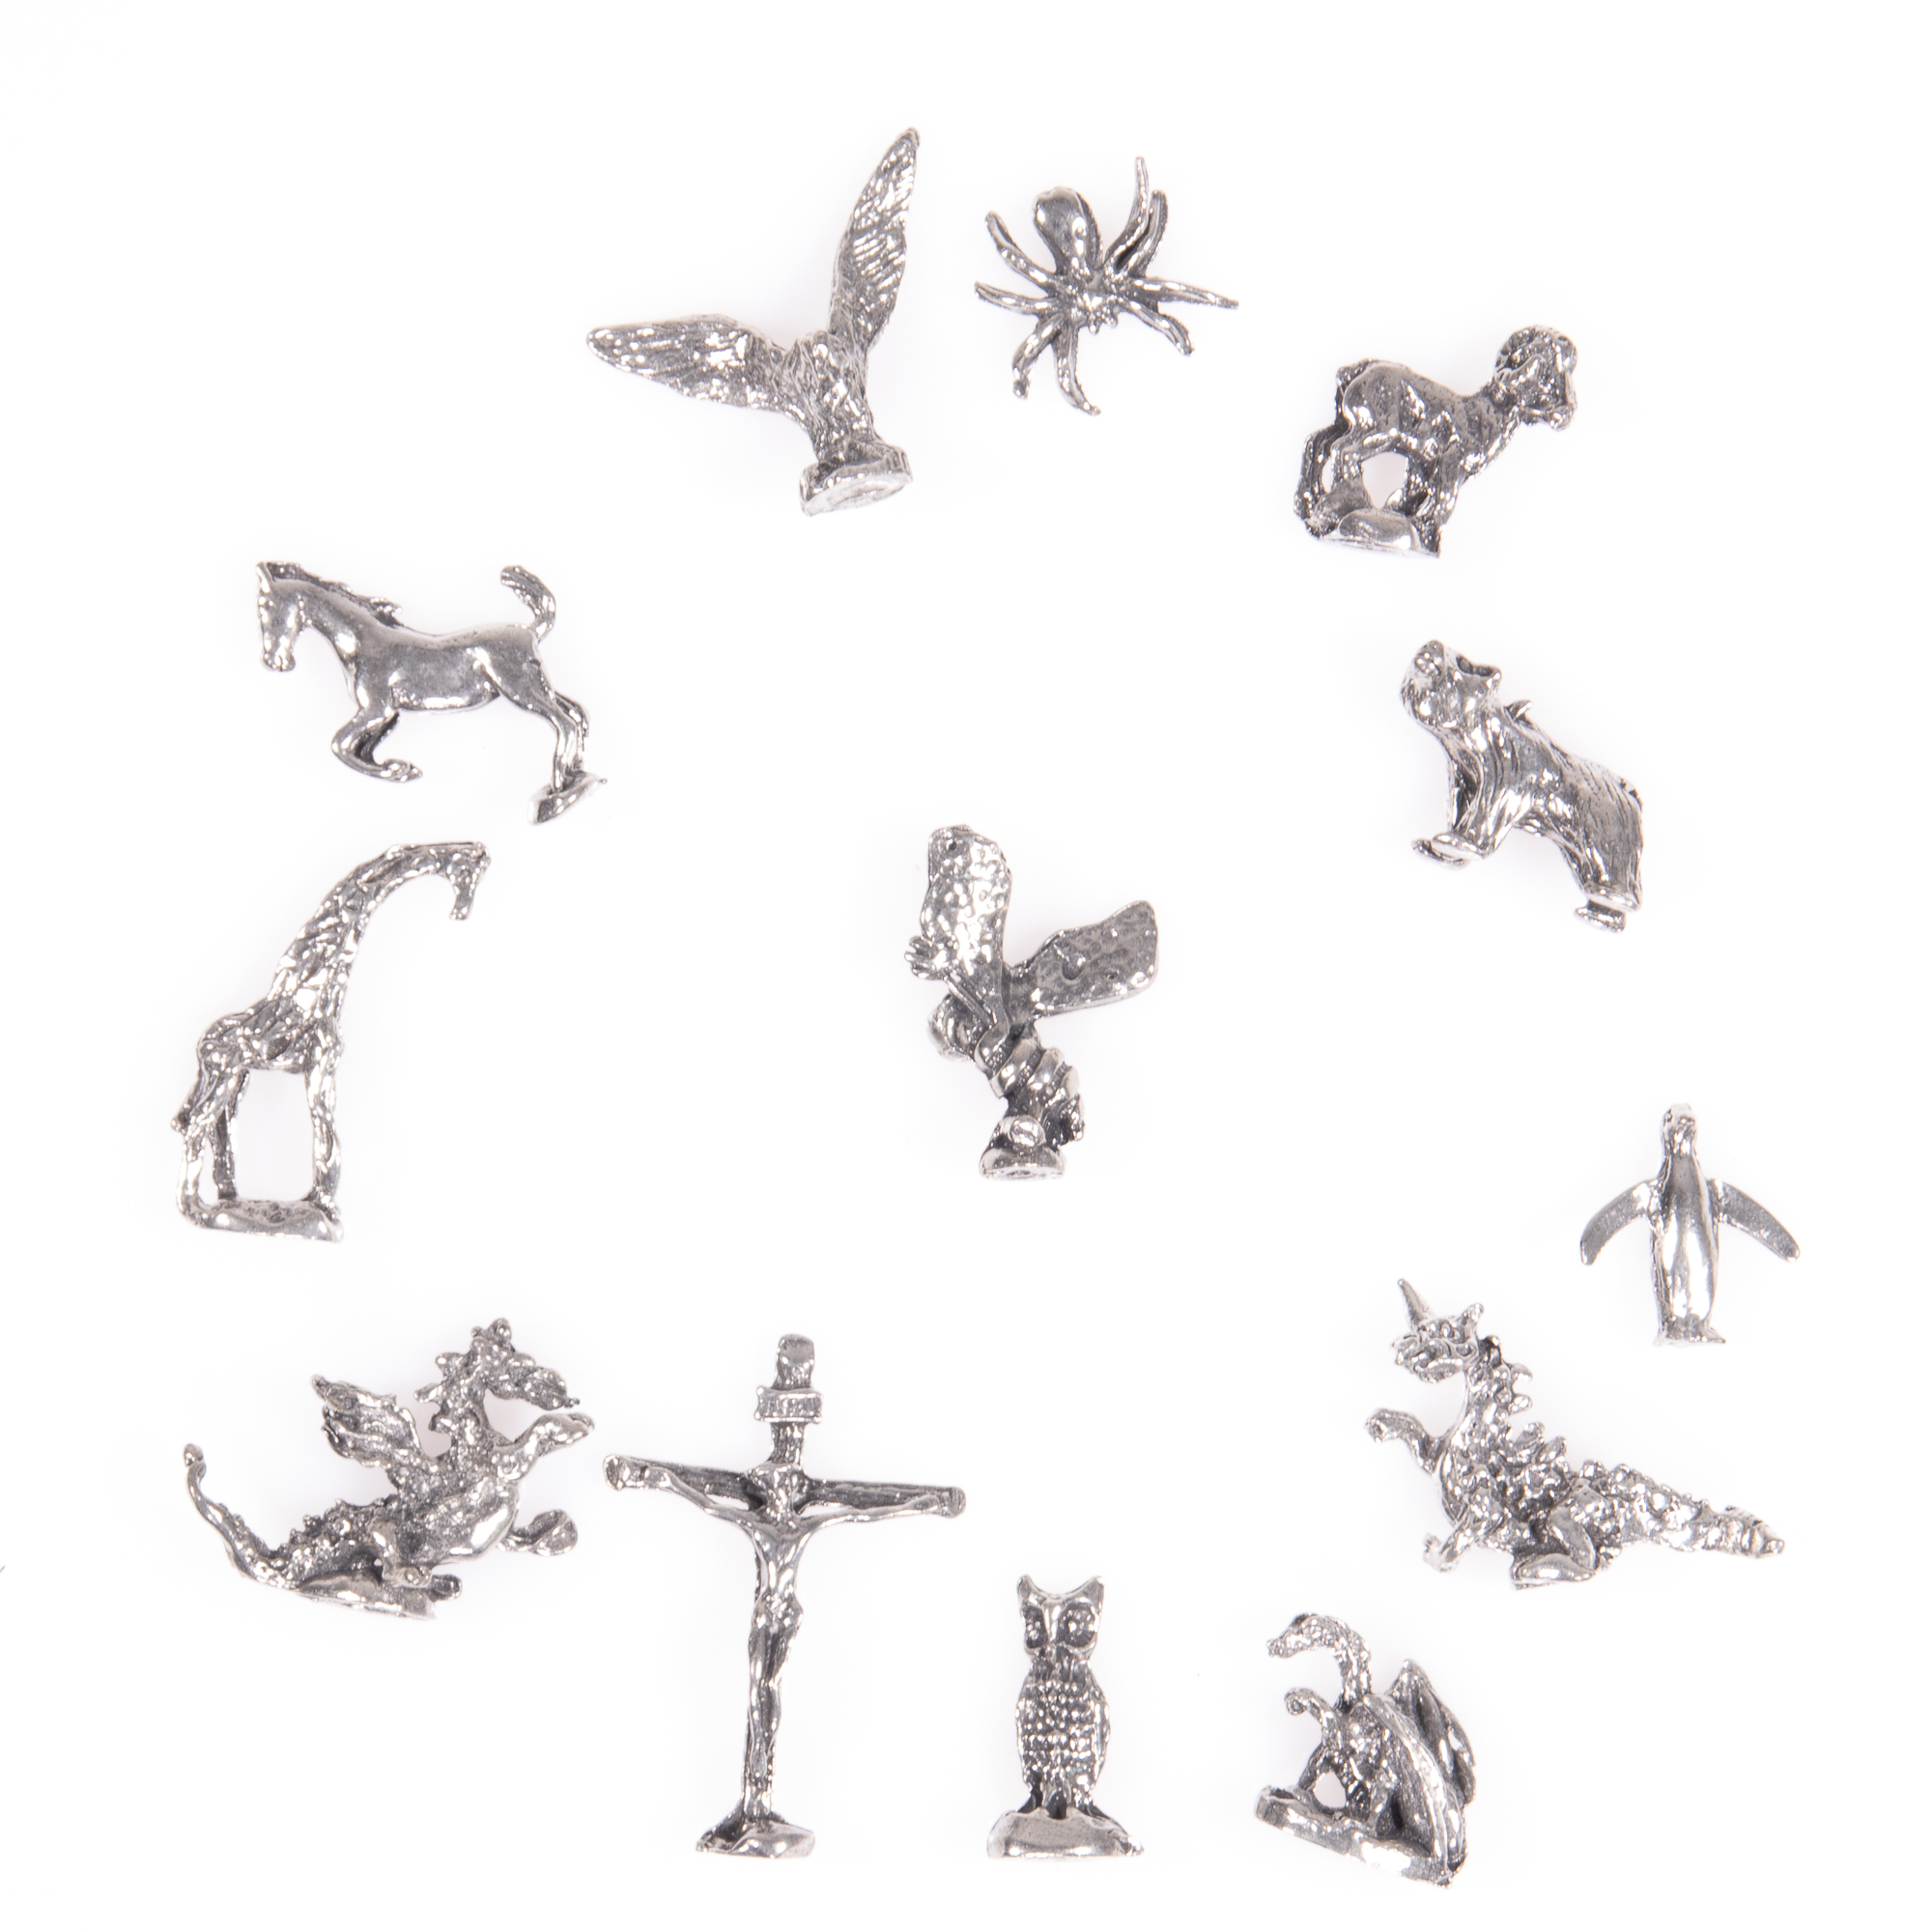 Selection of 13x Silver Novelty Charms - Image 5 of 6